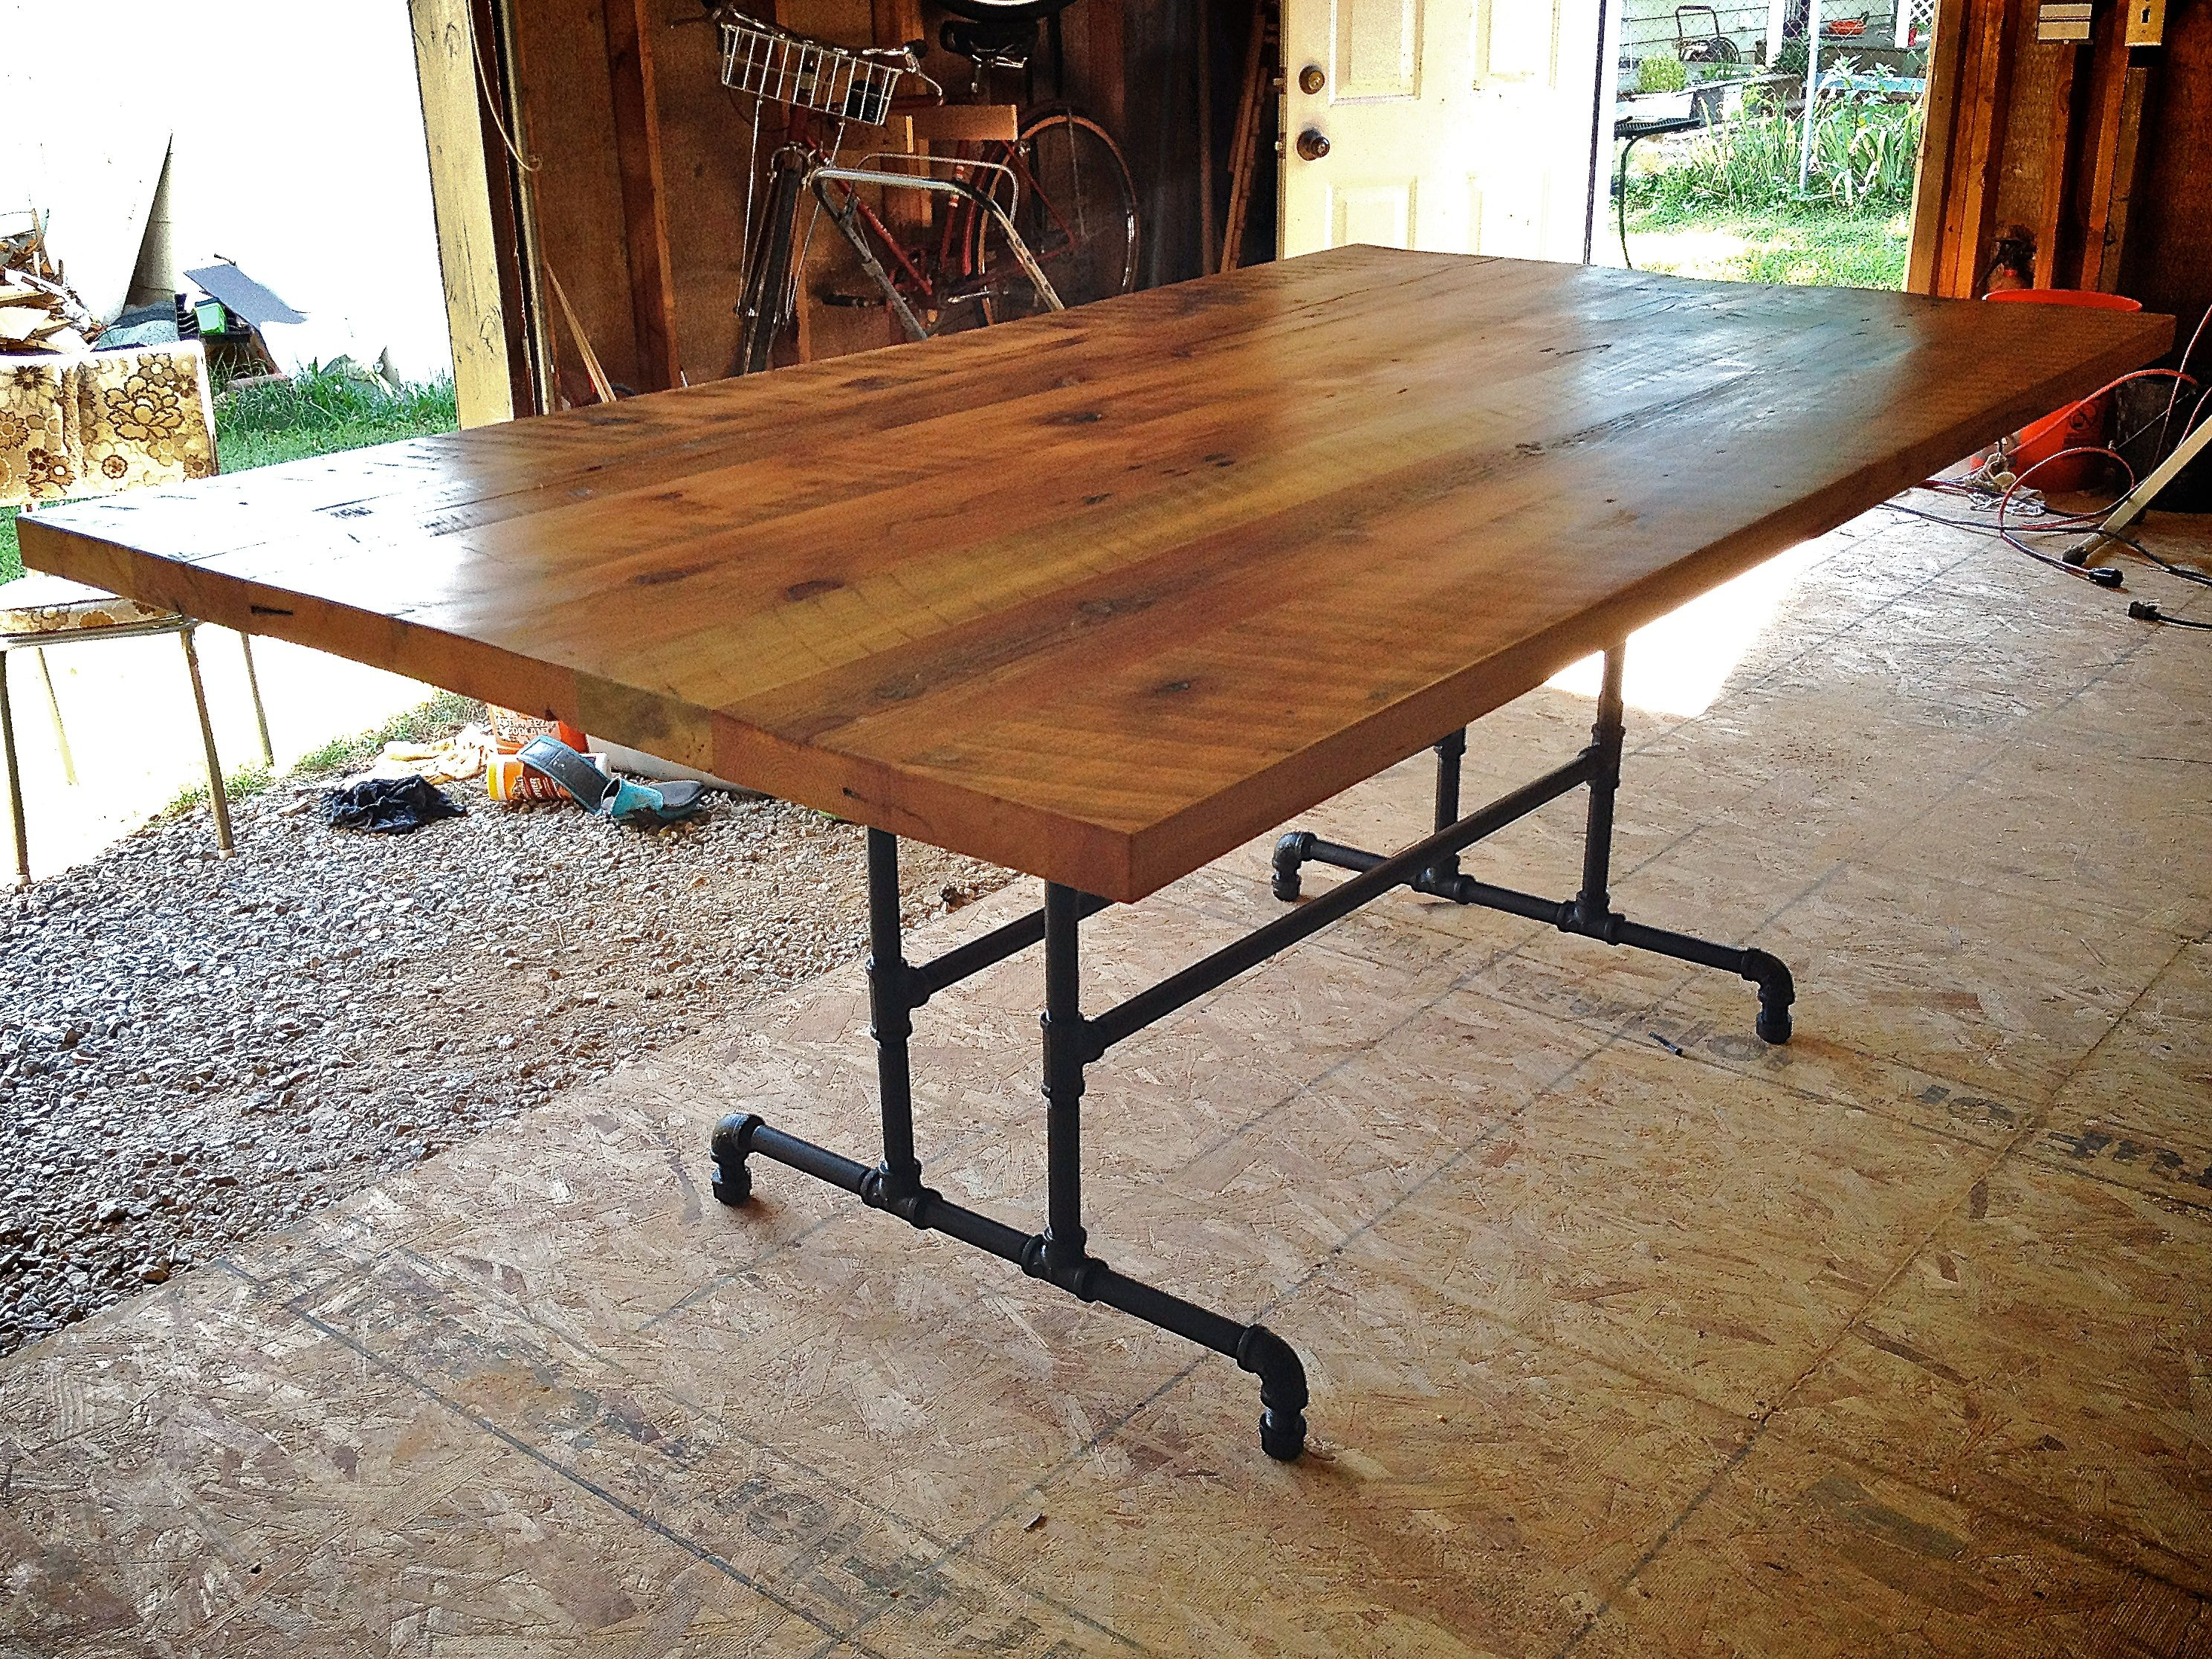 Furniture Custom Diy Large Farmhouse Dining Table With Solid Wooden Top And Black Iron Pipe Base Legs Ideas